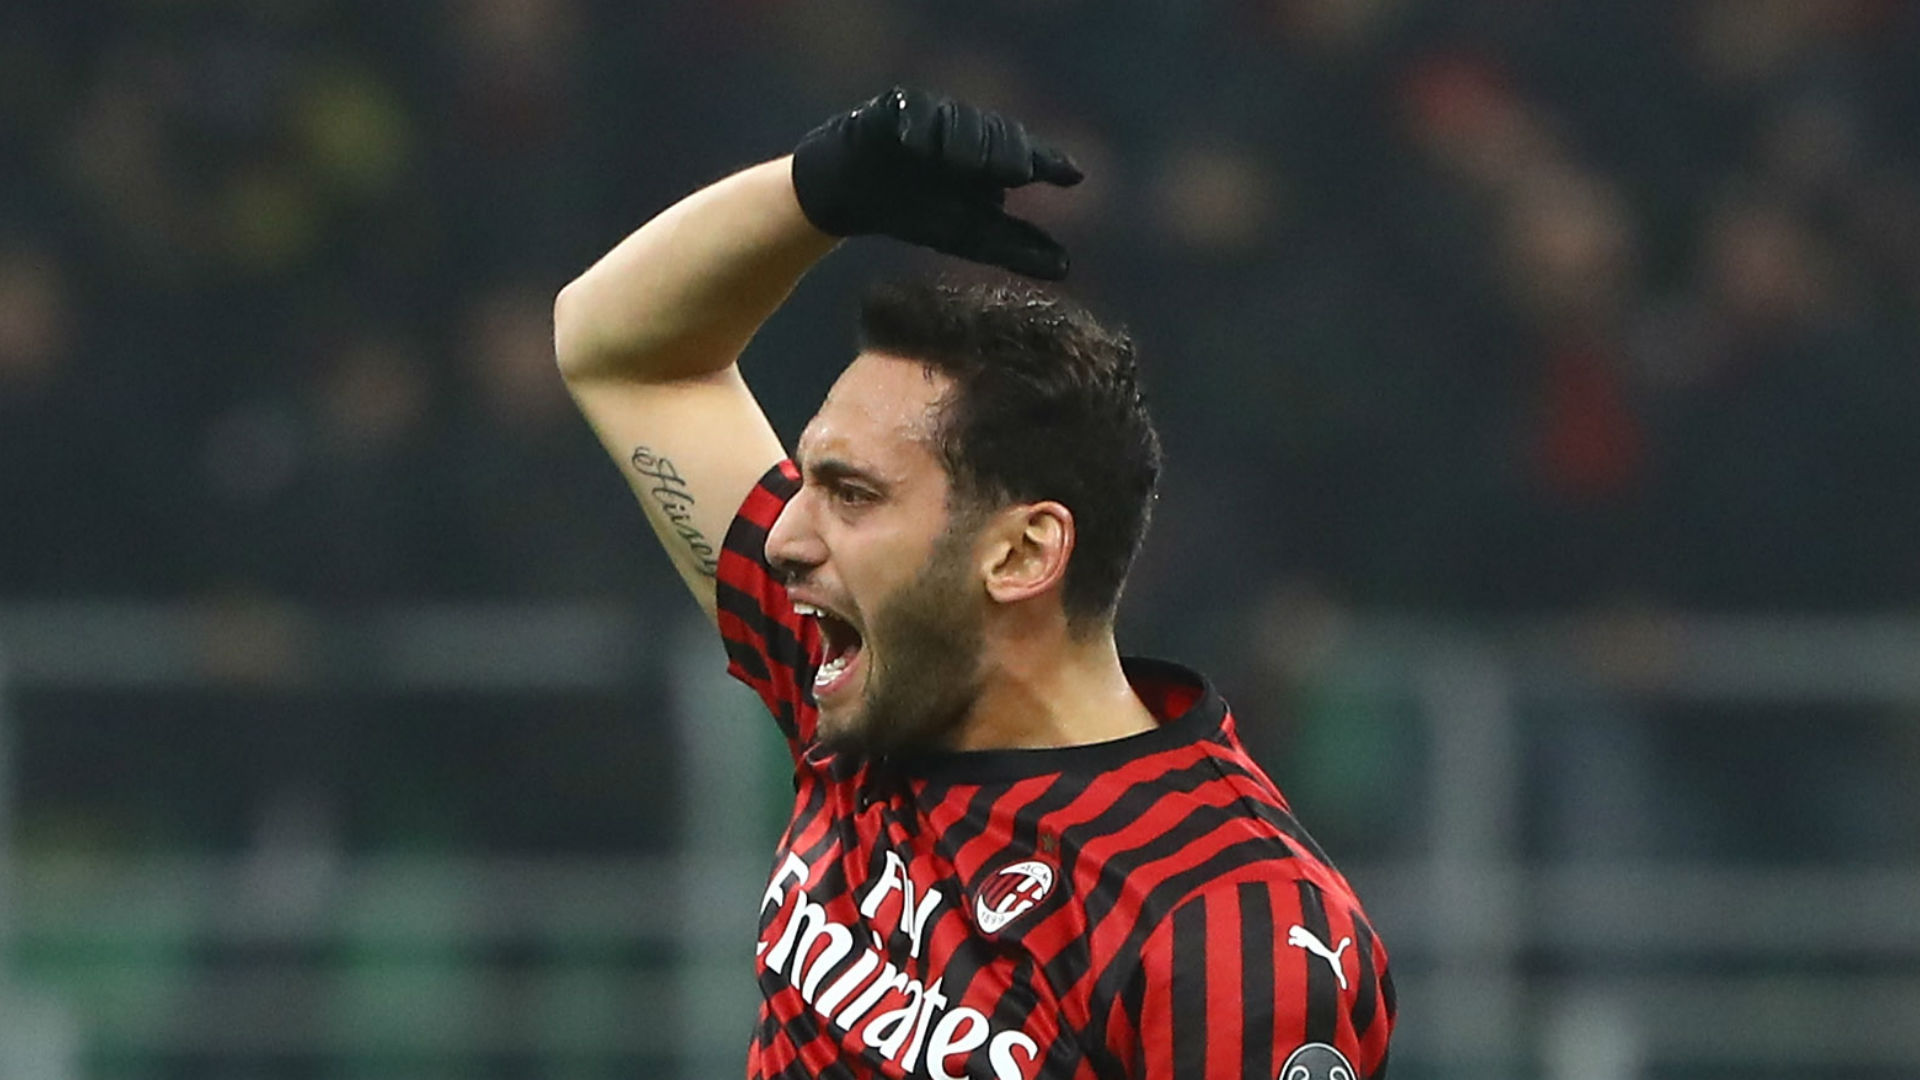 Milan 4-2 Torino (after extra time): Calhanoglu brings Rossoneri back from the brink